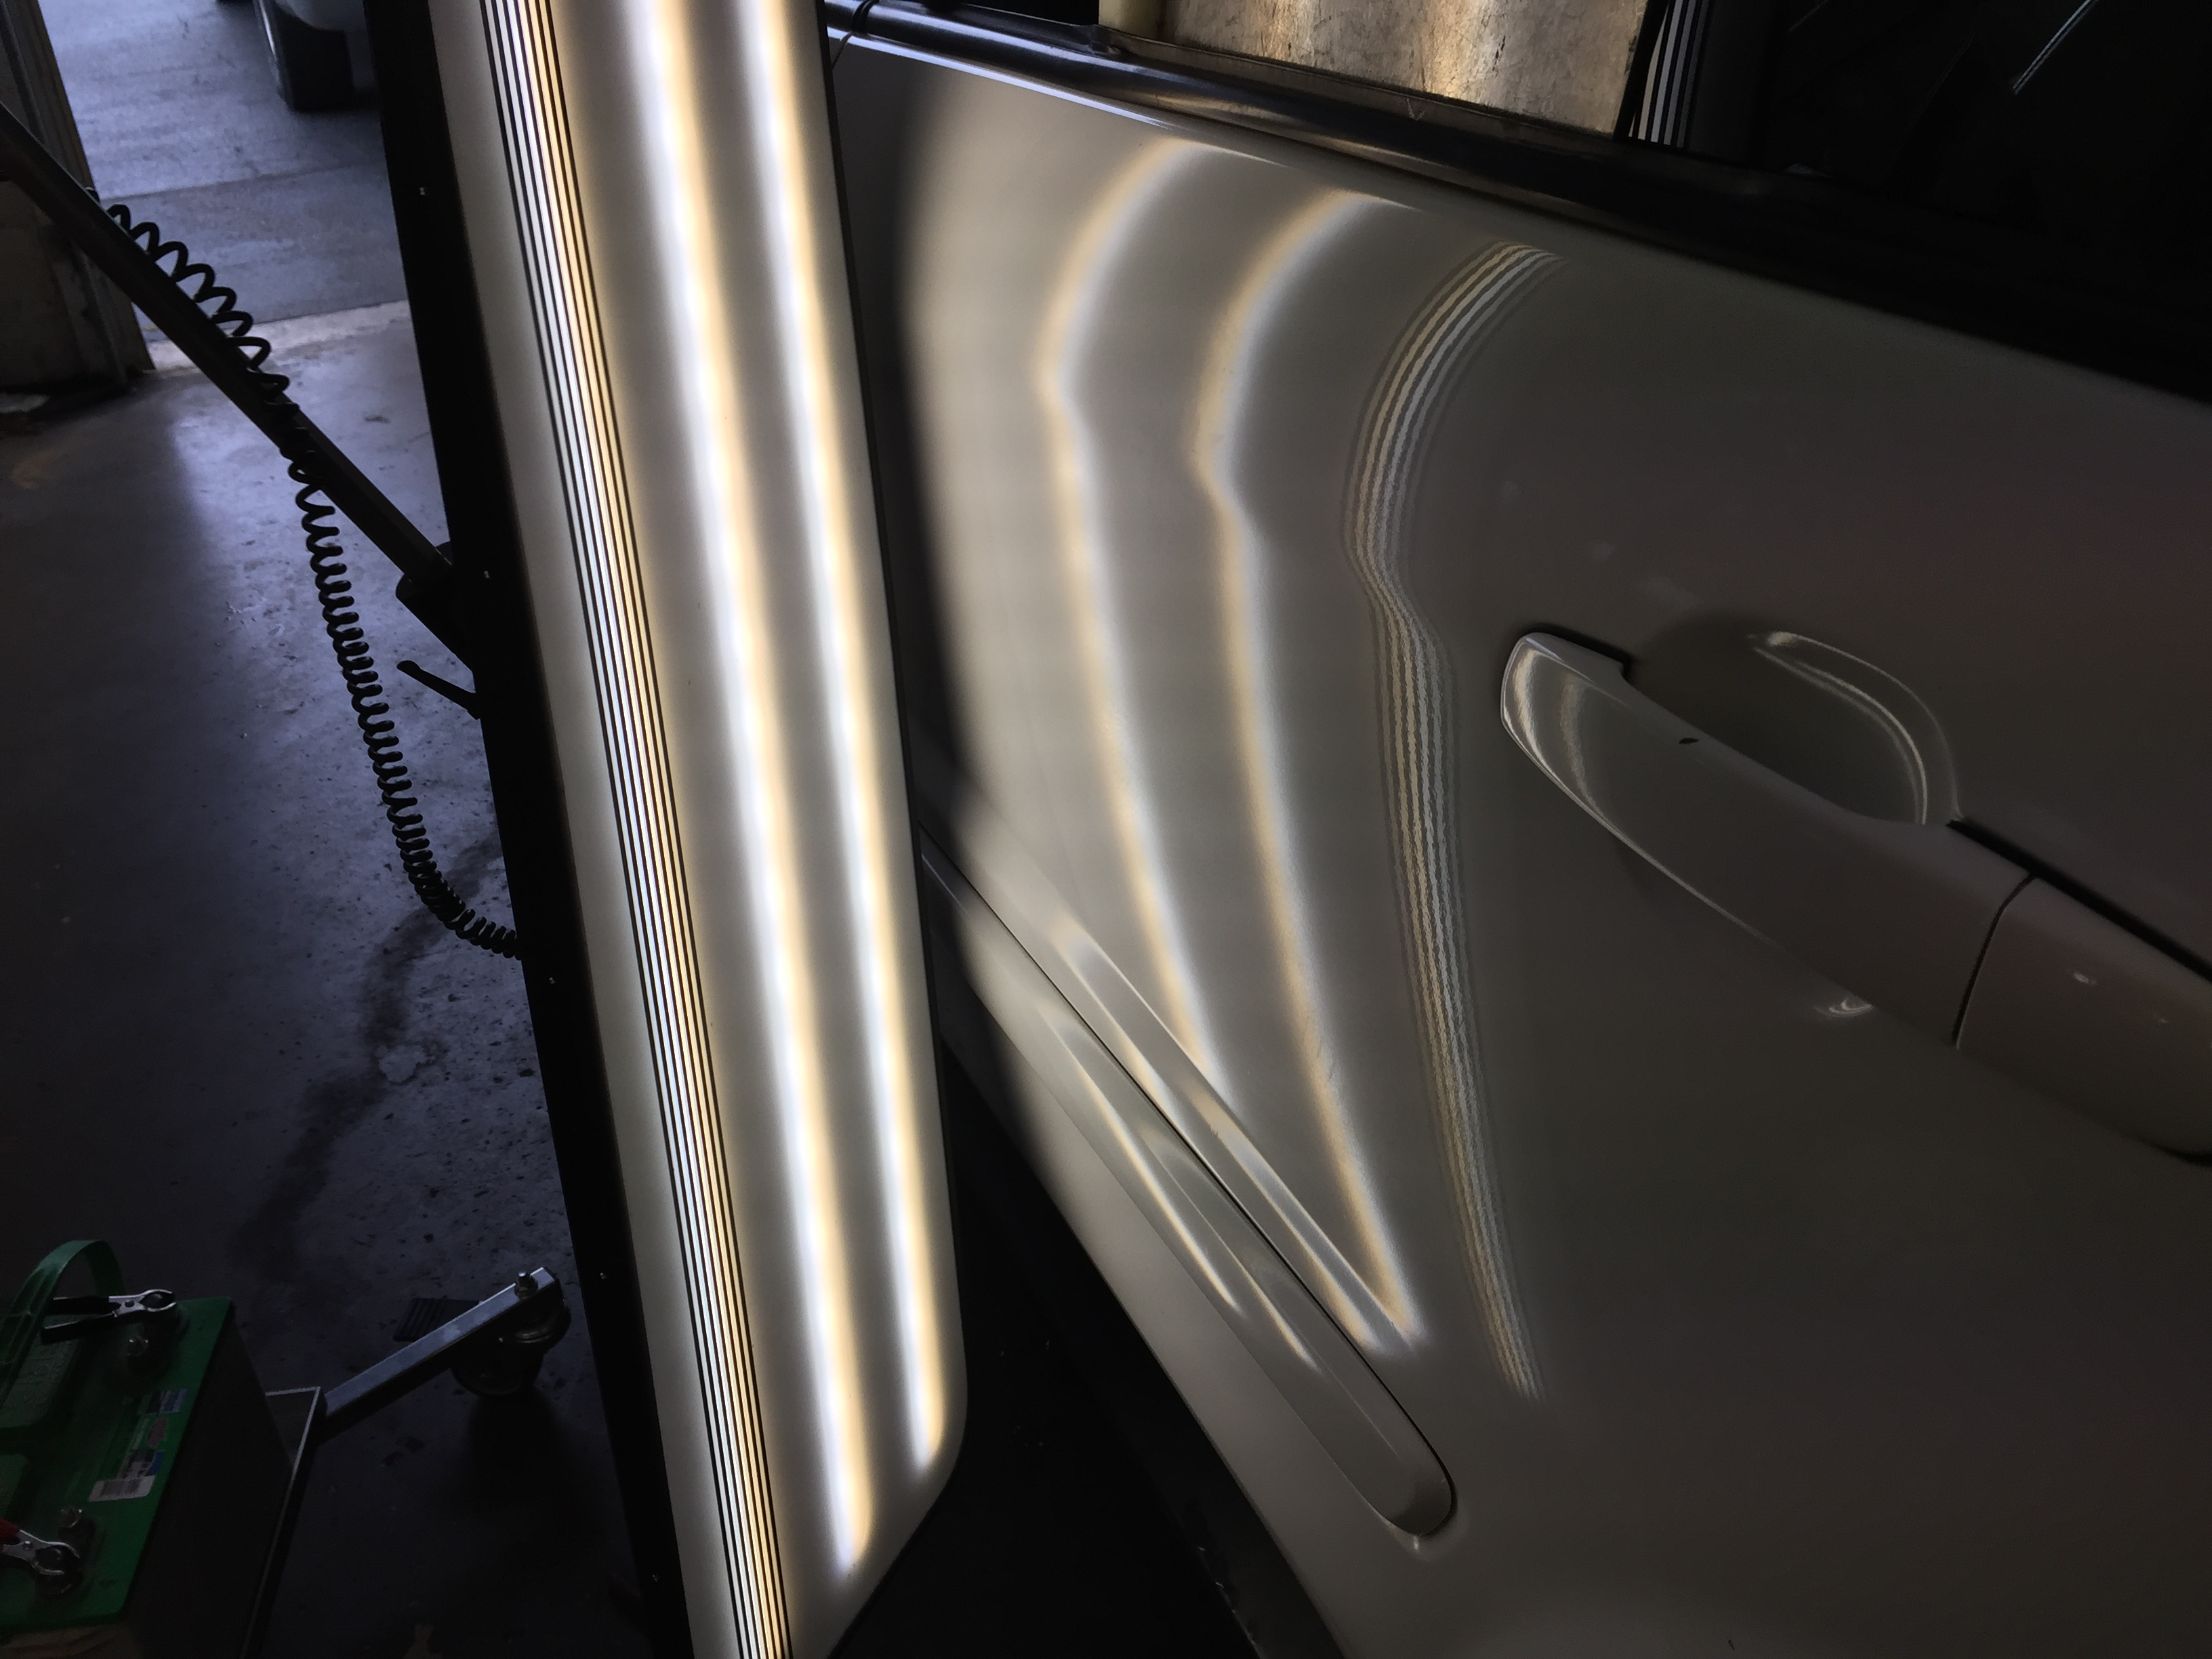 2009 White Torrent Large Dent Drivers Rear Door